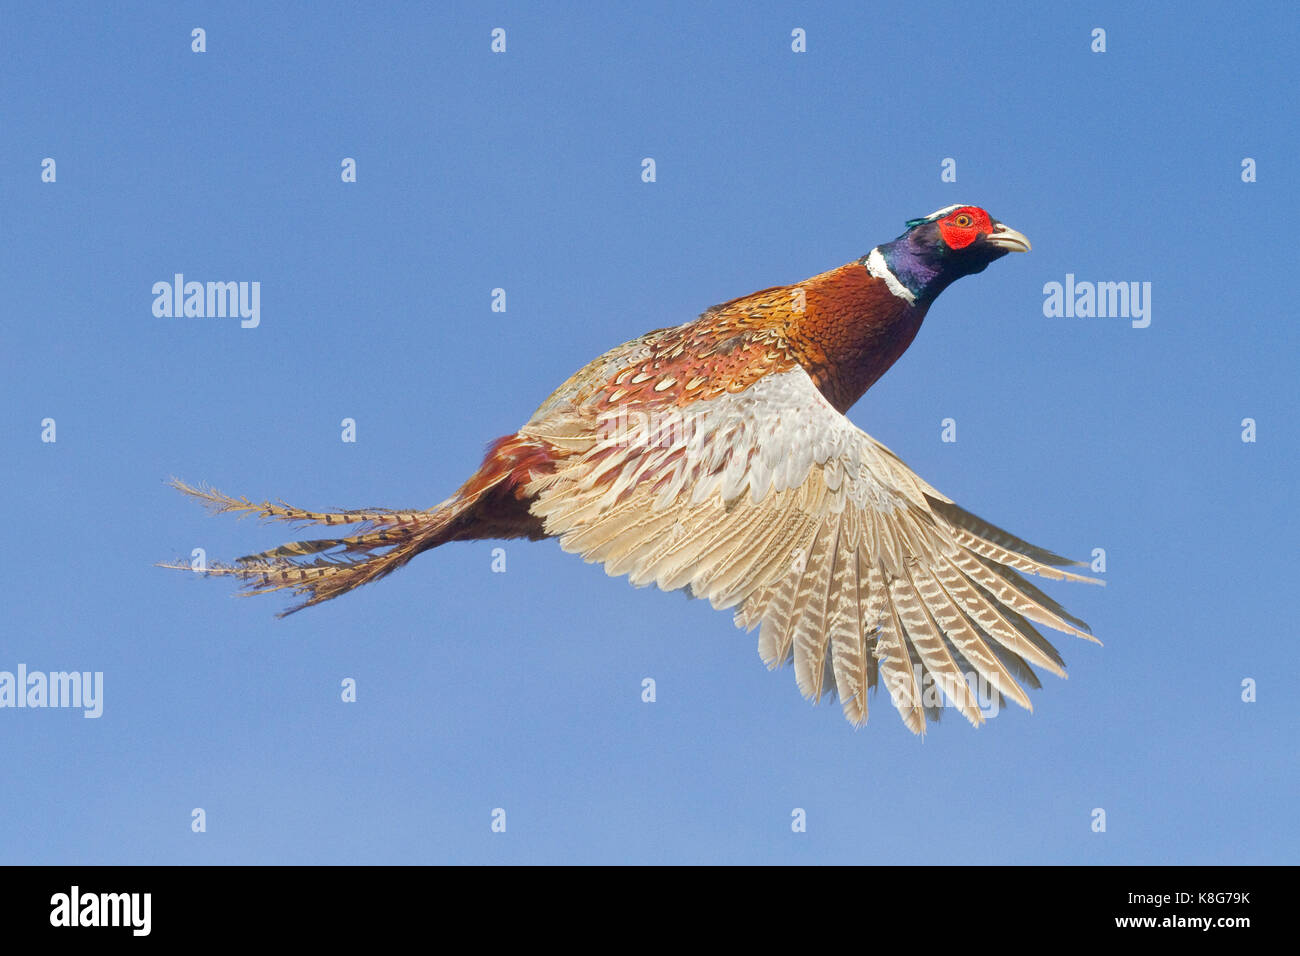 Ring-necked Pheasant in Flight - Stock Image